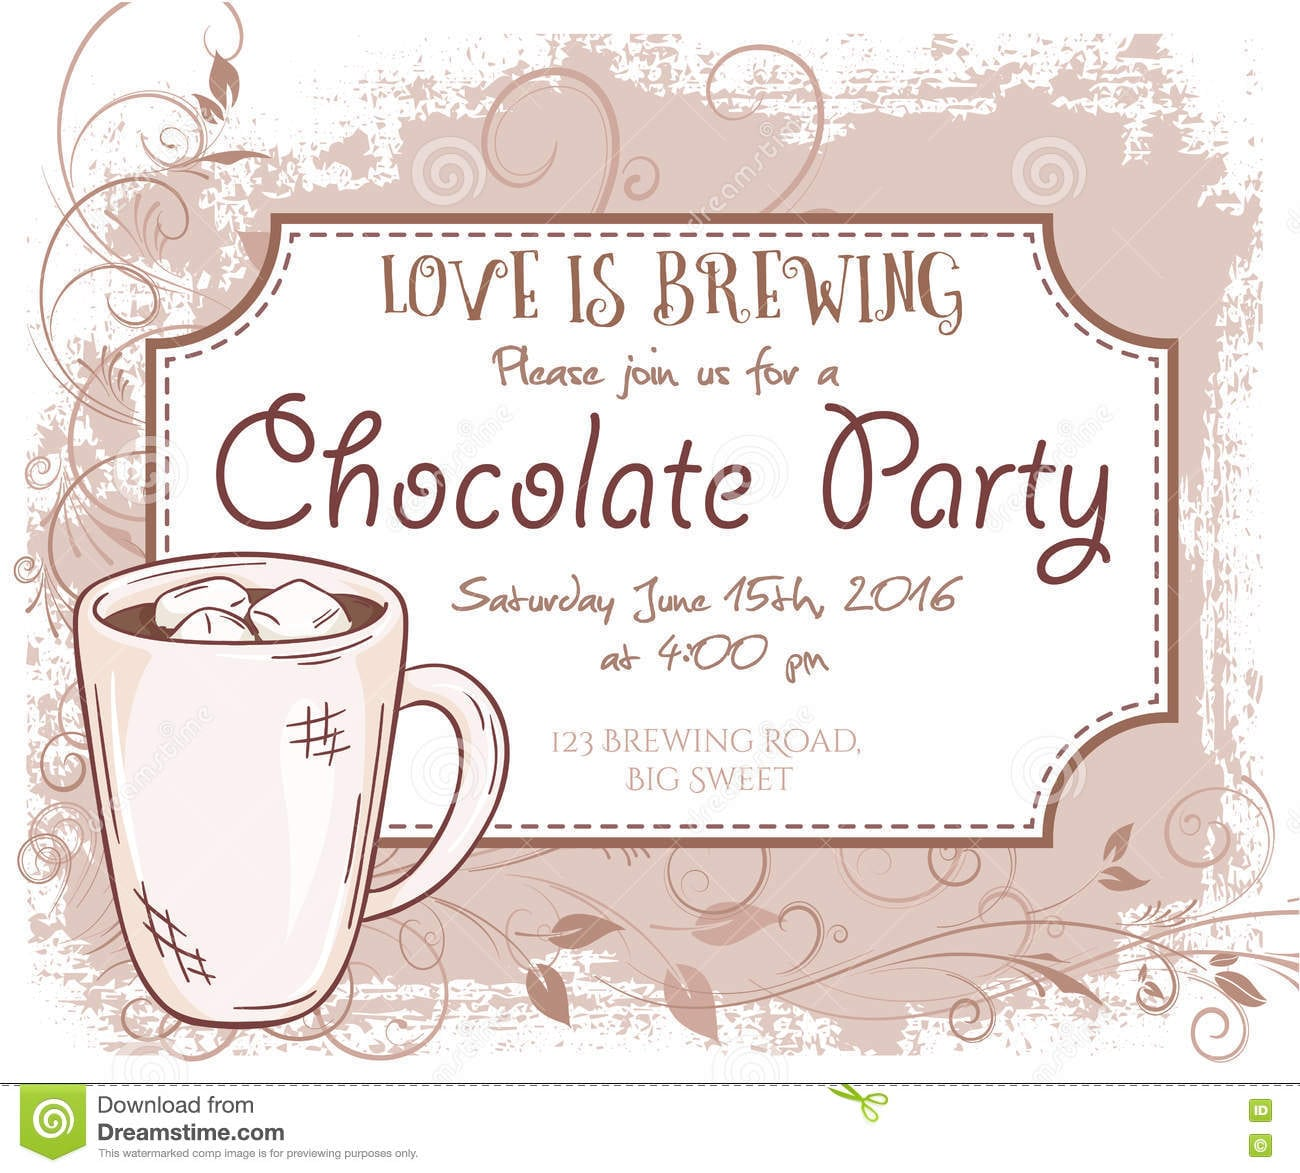 Vector Hand Drawn Chocolate Party Invitation Card, Vintage Frame